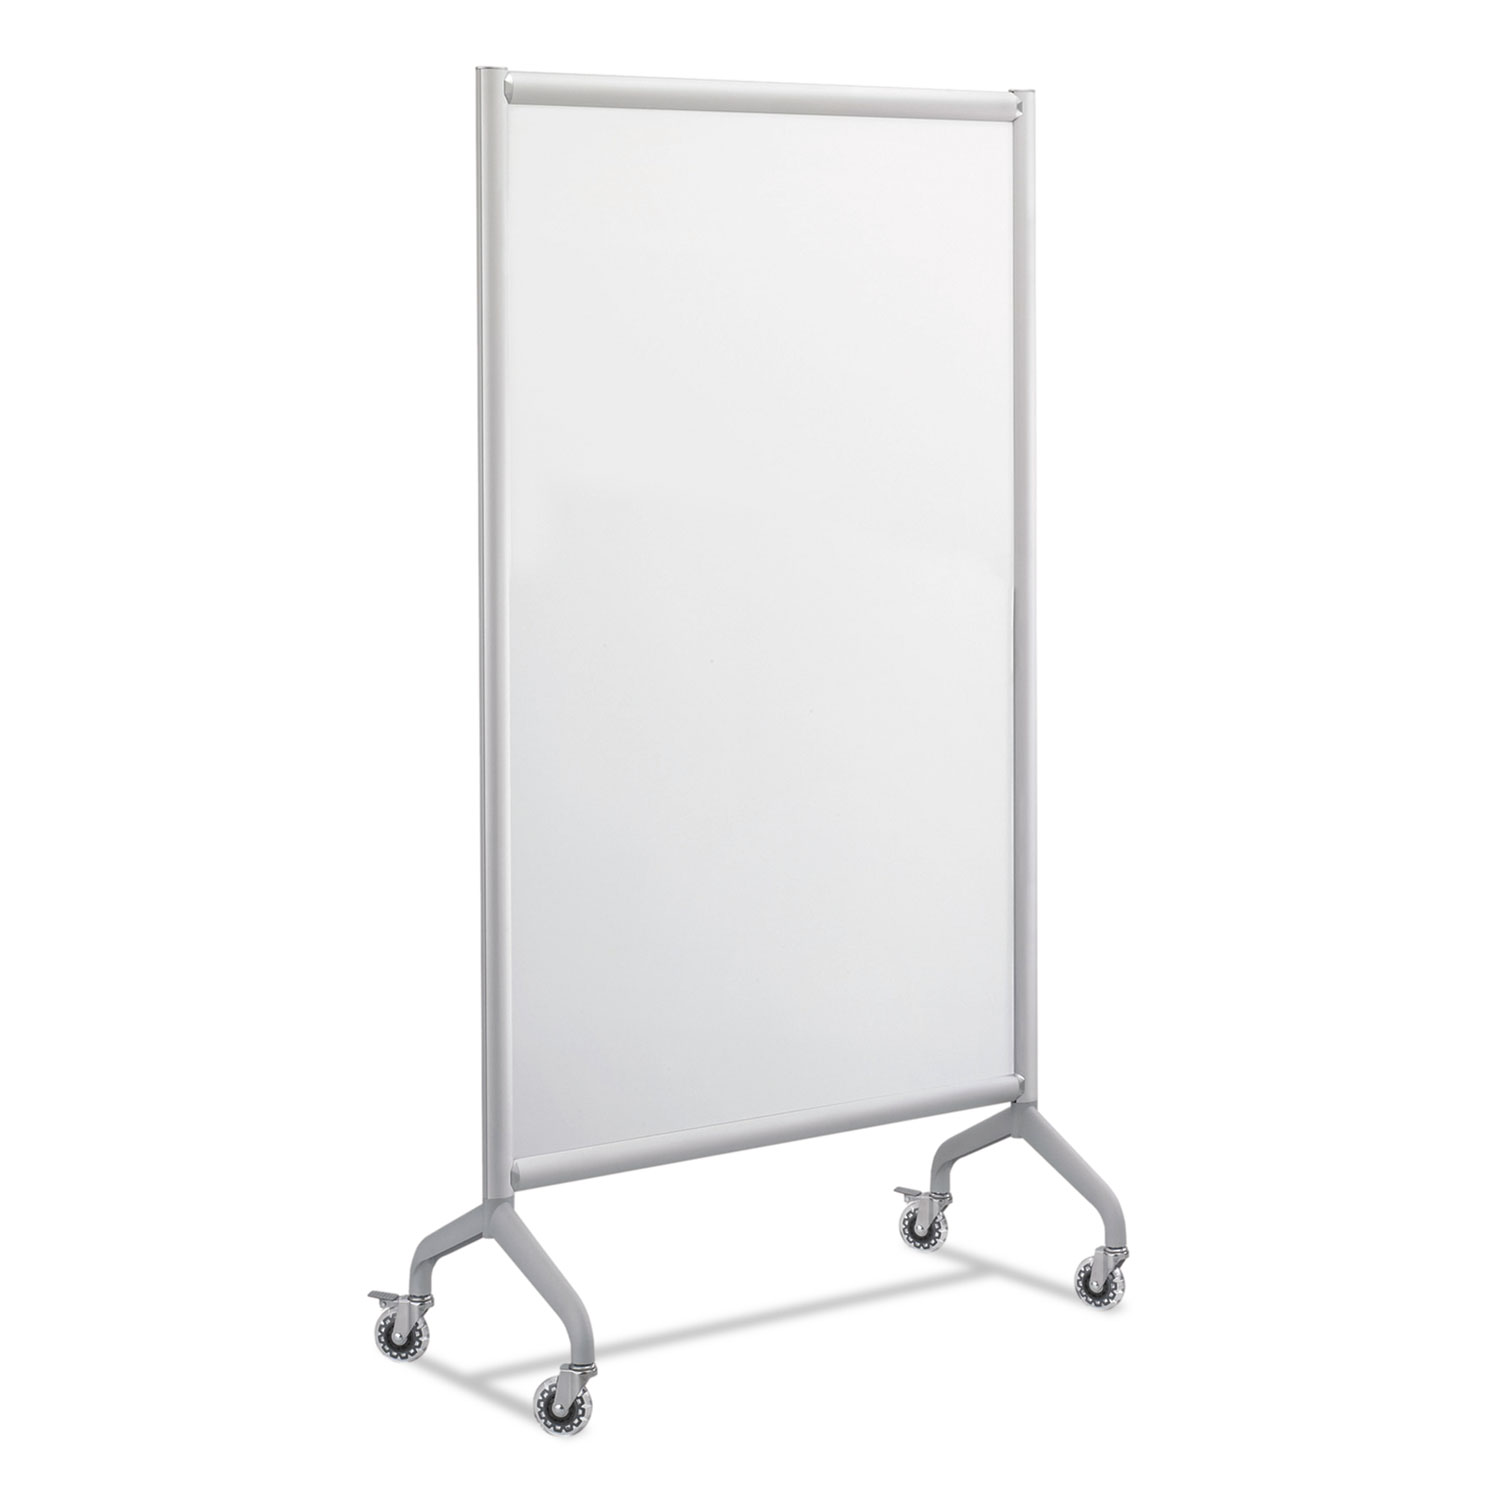 Rumba Full Panel Whiteboard Collaboration Screen, 36 x 66, White/Gray